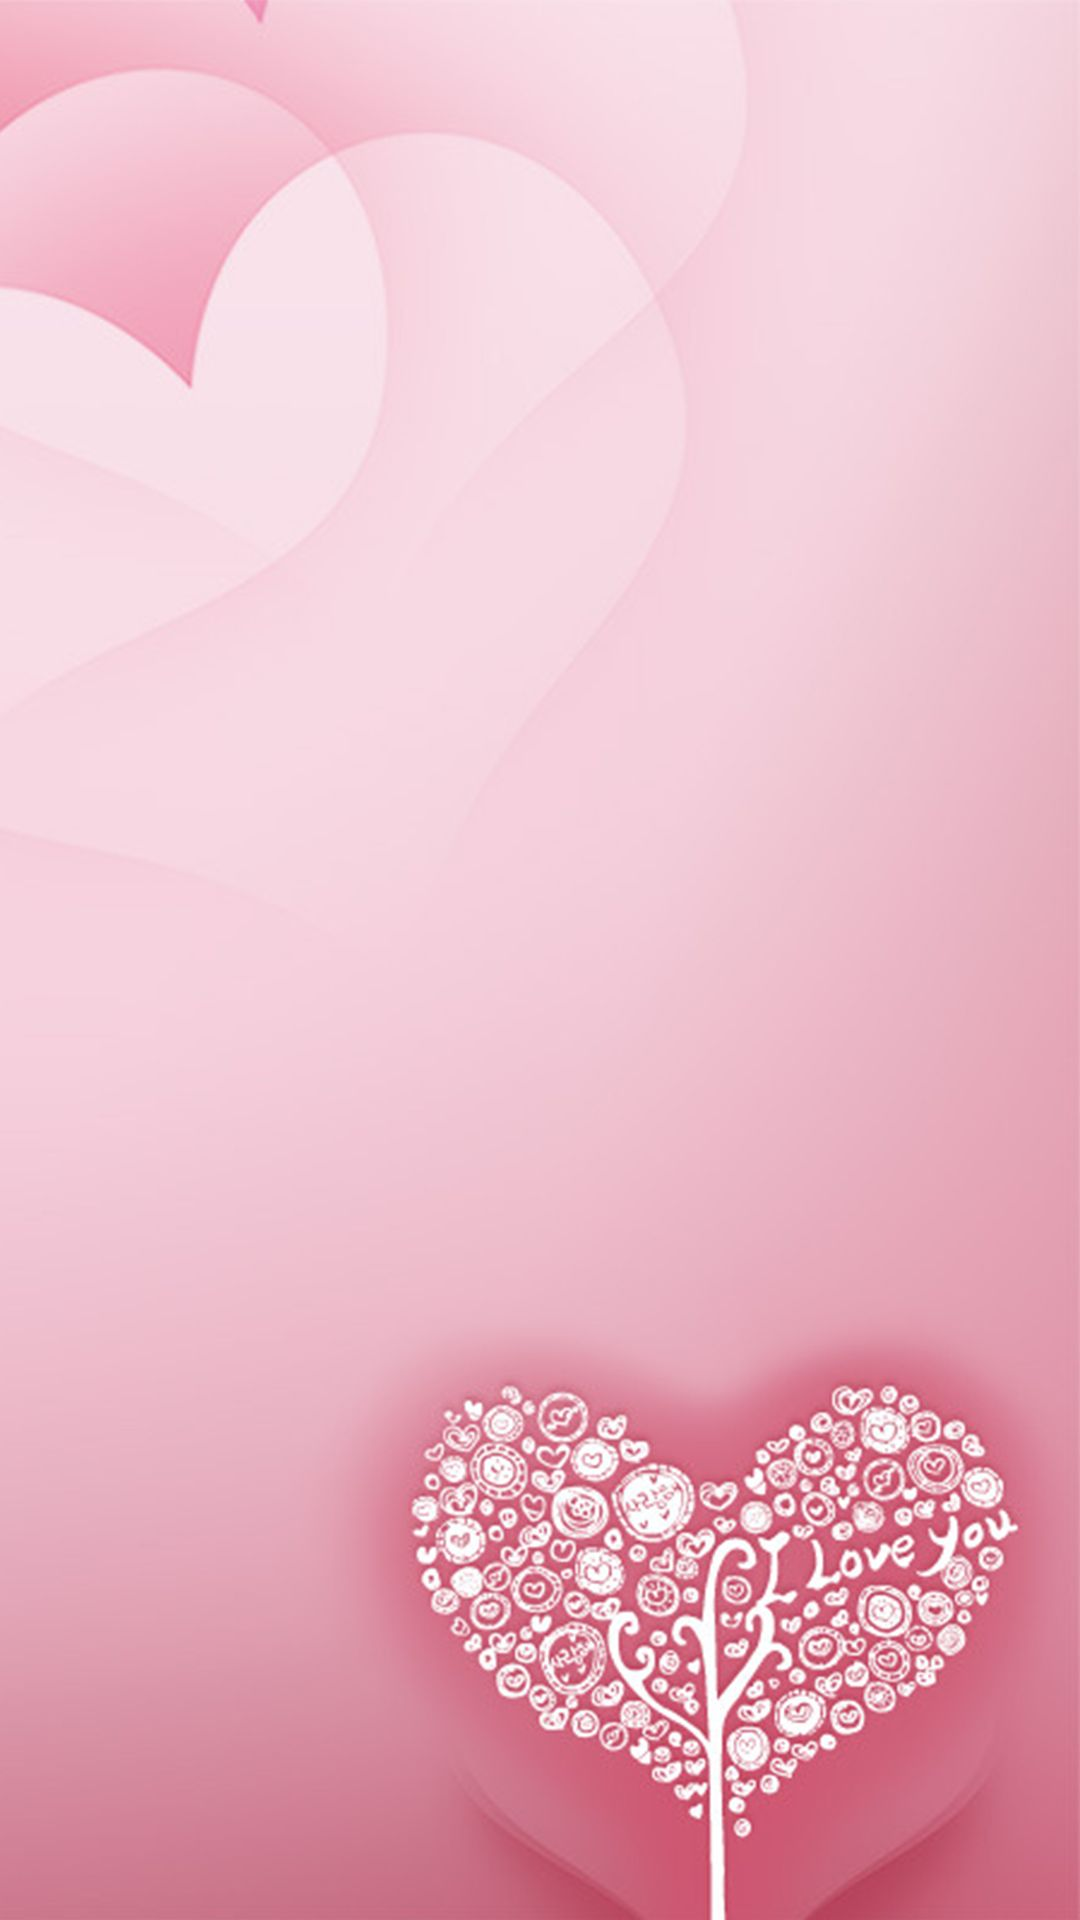 Romantic Love Card Romantic Background Love Pink, Backgrounds. Png